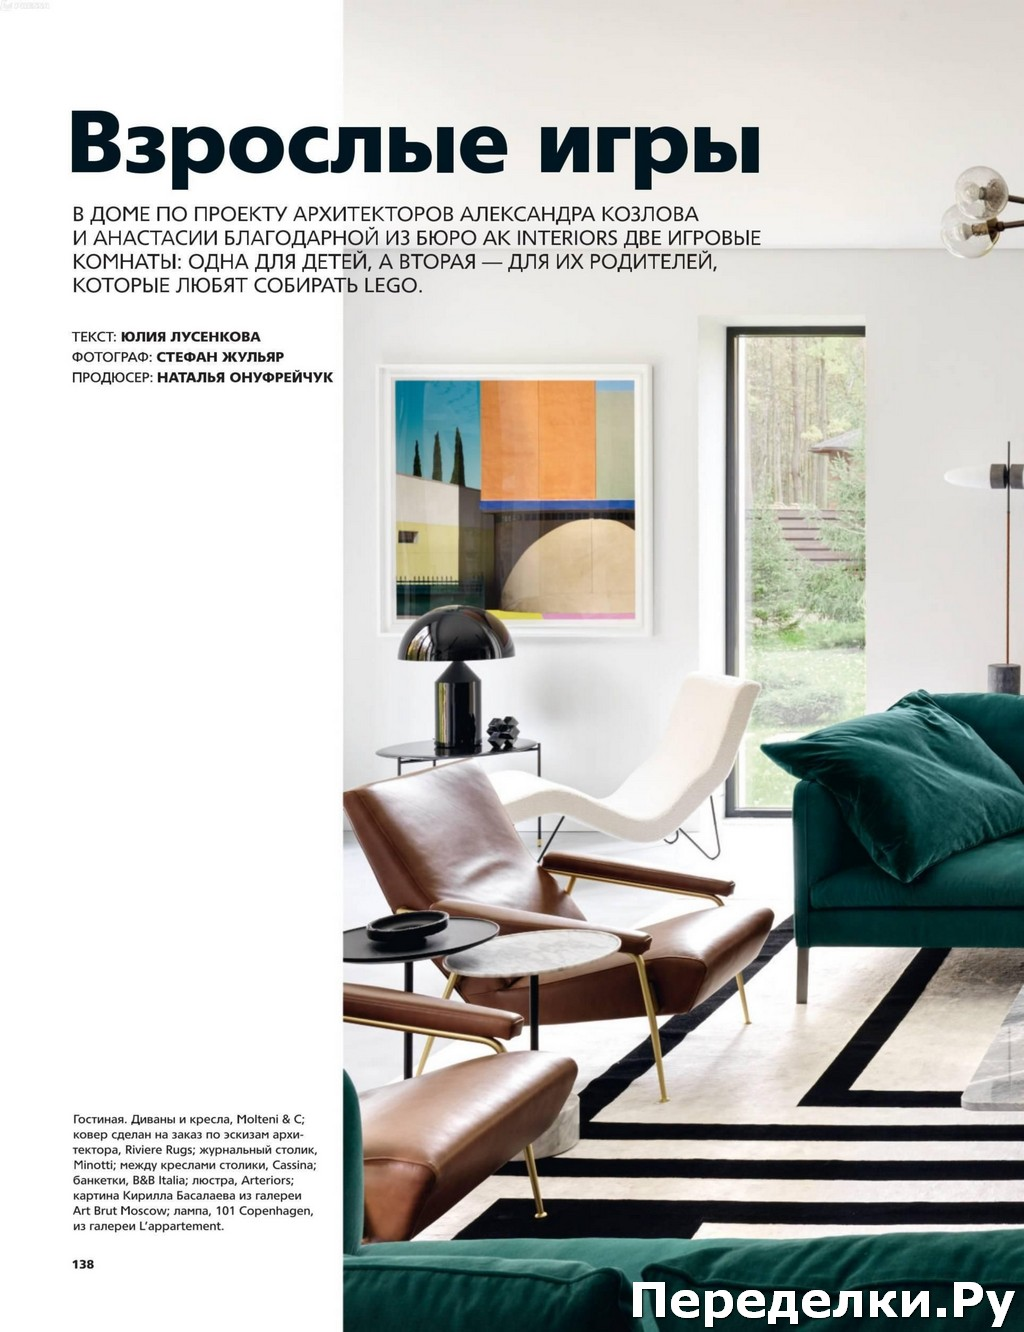 AD Architectural Digest 4 aprel 2020 133